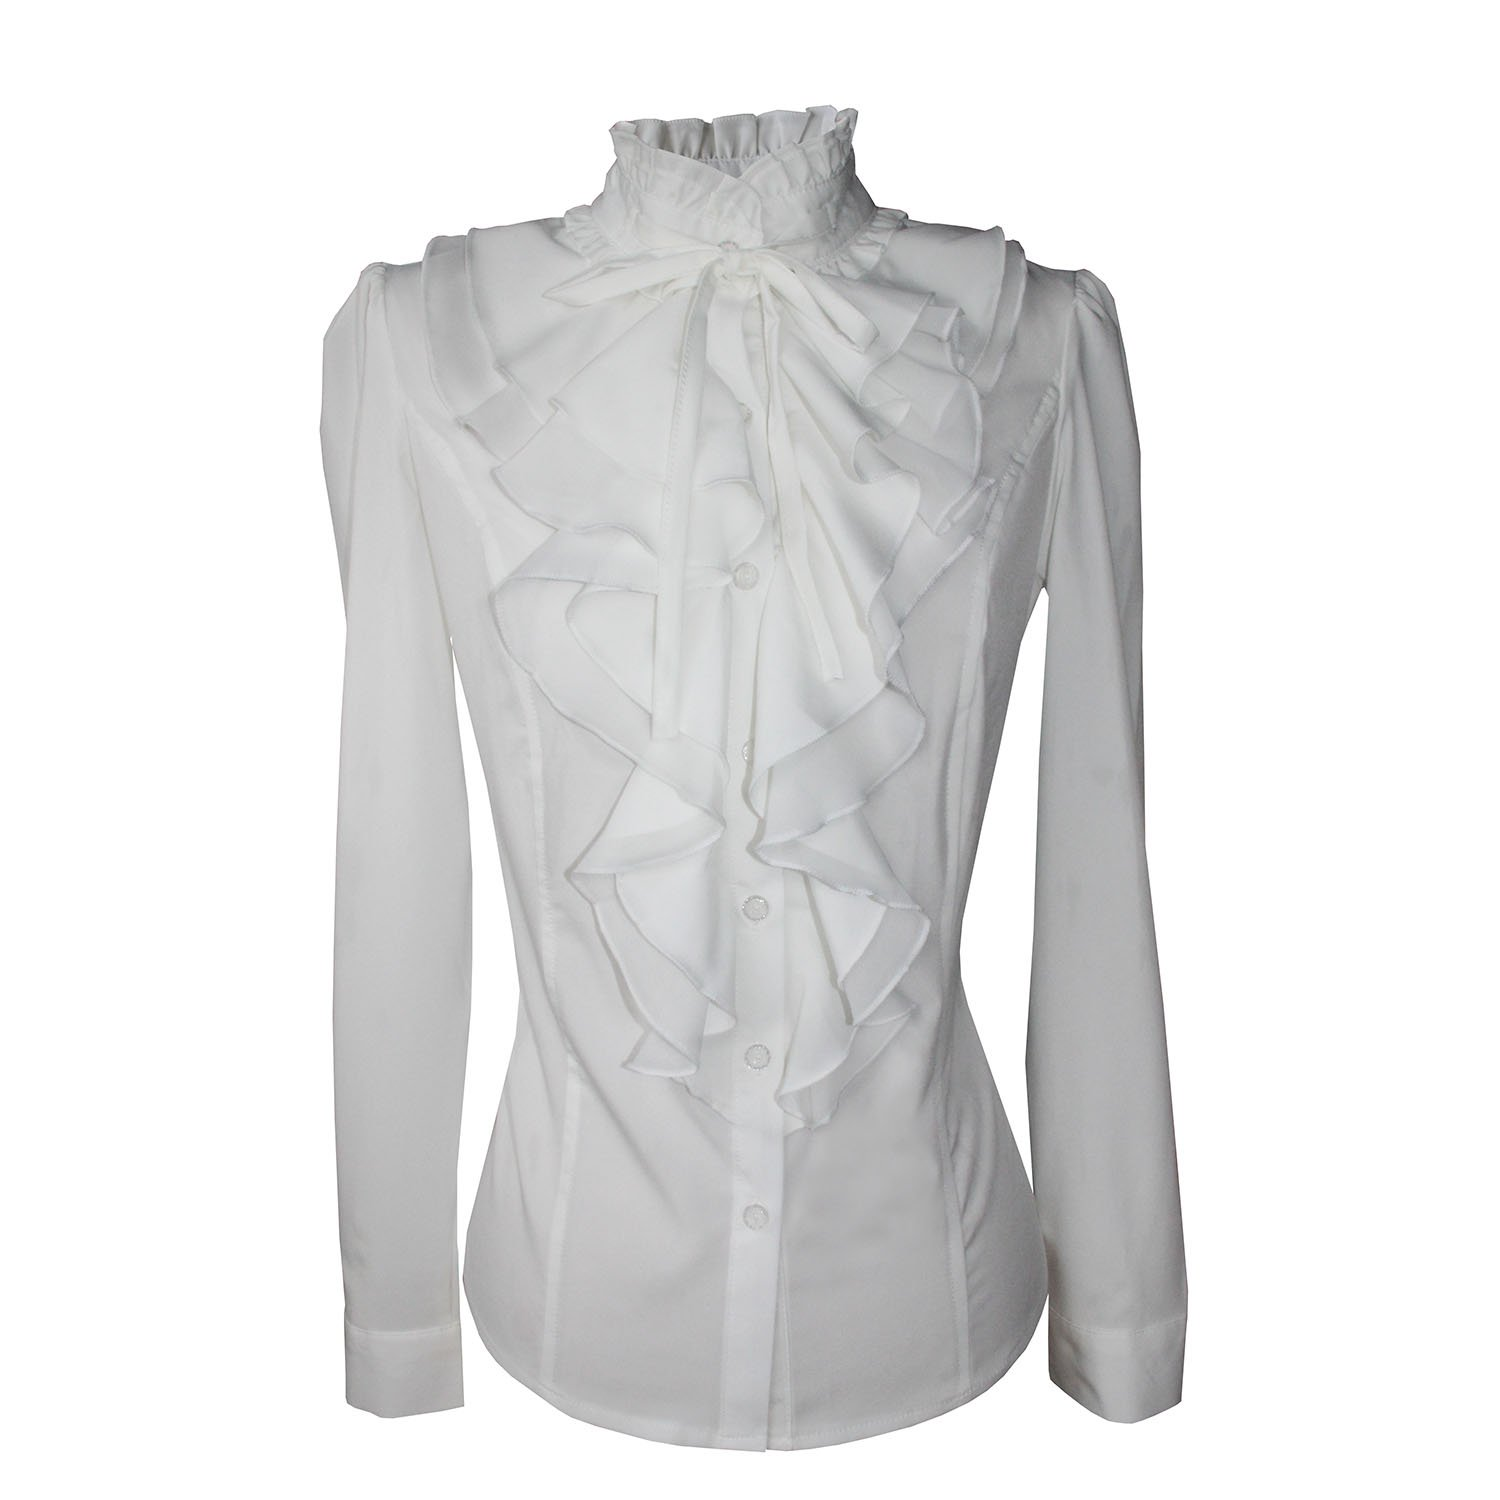 Victorian Blouses, Tops, Shirts, Vests Y&Z Shirts for Women Stand-up Collar Vintage Victoria Ruffle BS02 $18.99 AT vintagedancer.com